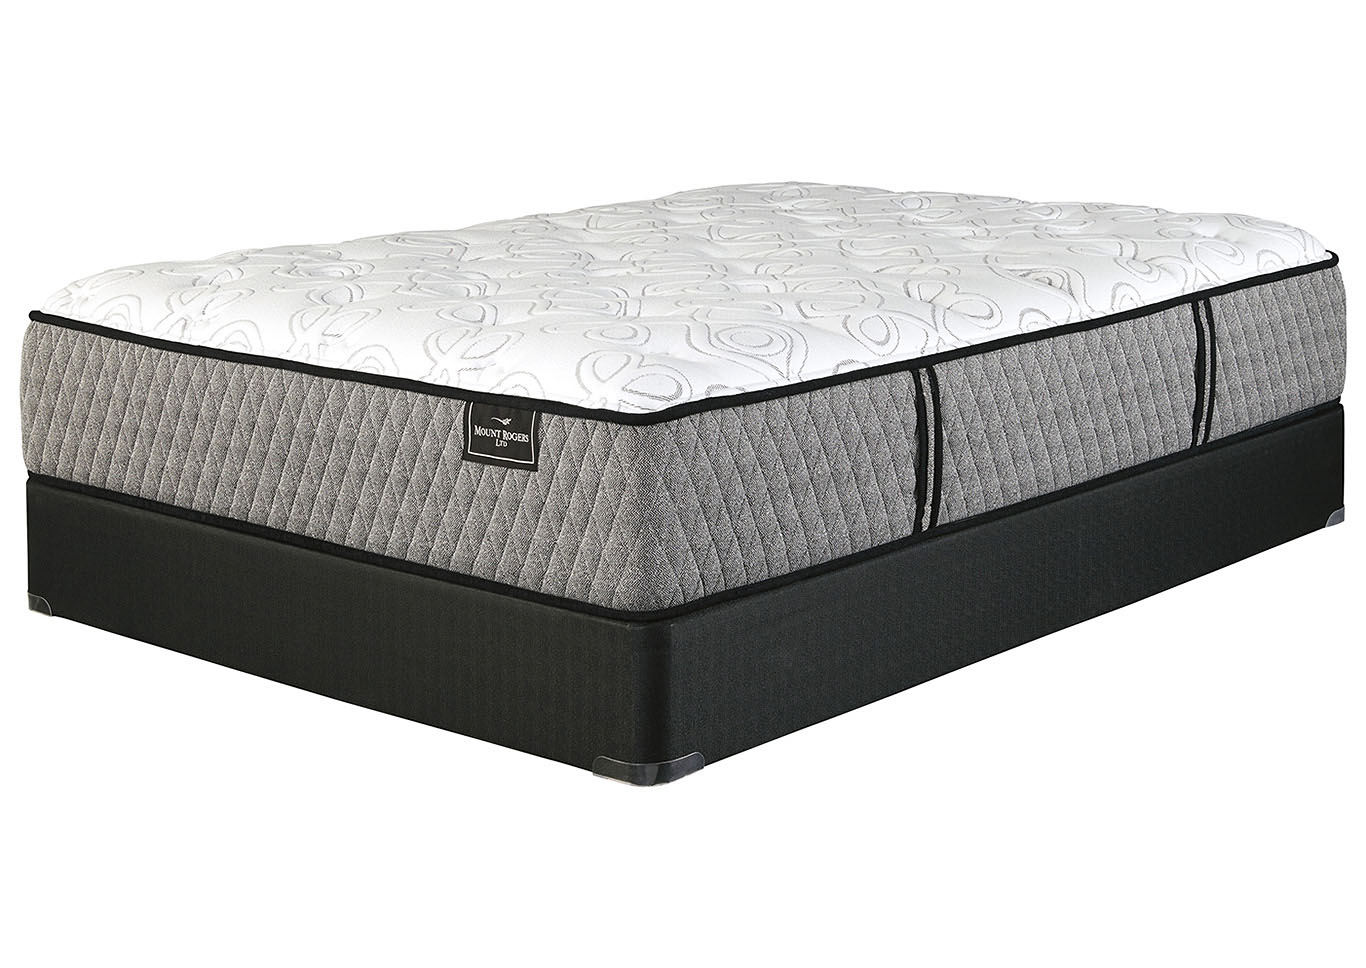 Mt. Rogers Limited Plush White California King Mattress w/Foundation,Sierra Sleep by Ashley